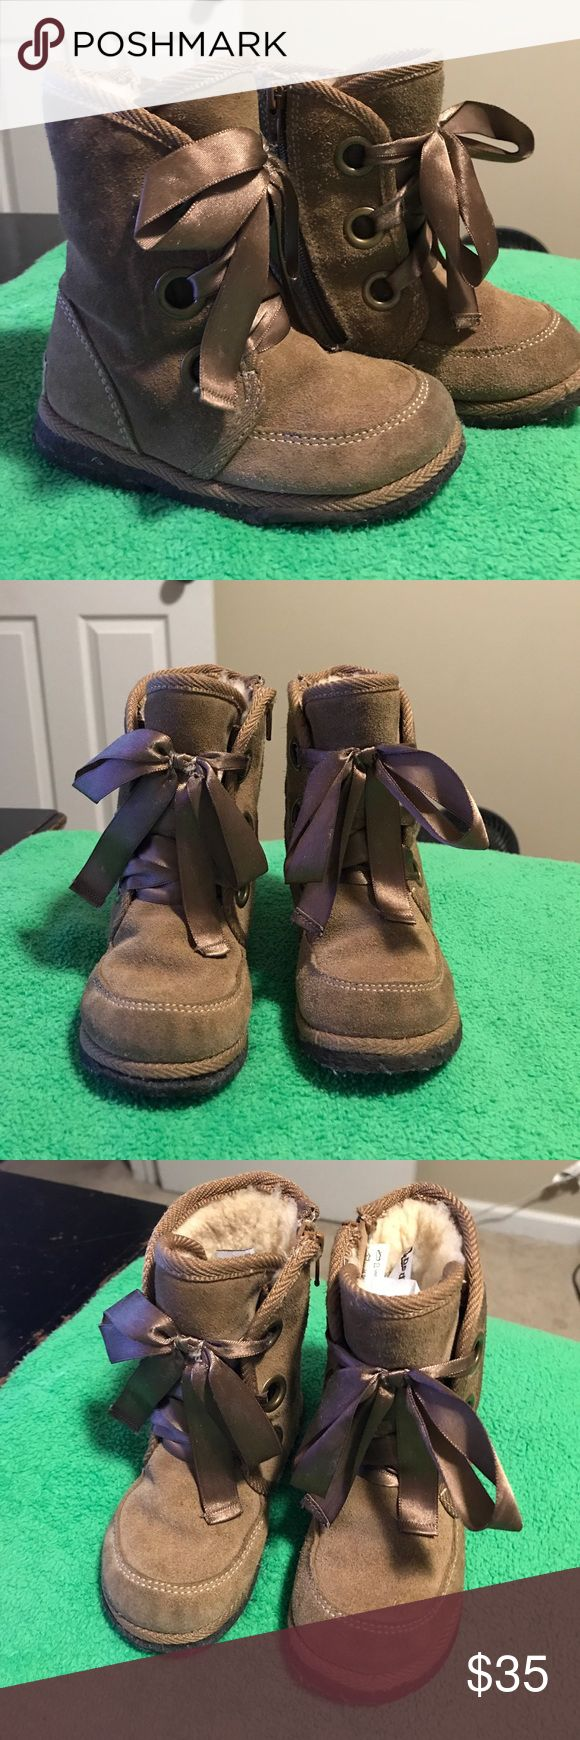 Toddler size 7 Toddler girls boots size 7 -good used condition  -suede tan pediped Shoes Boots